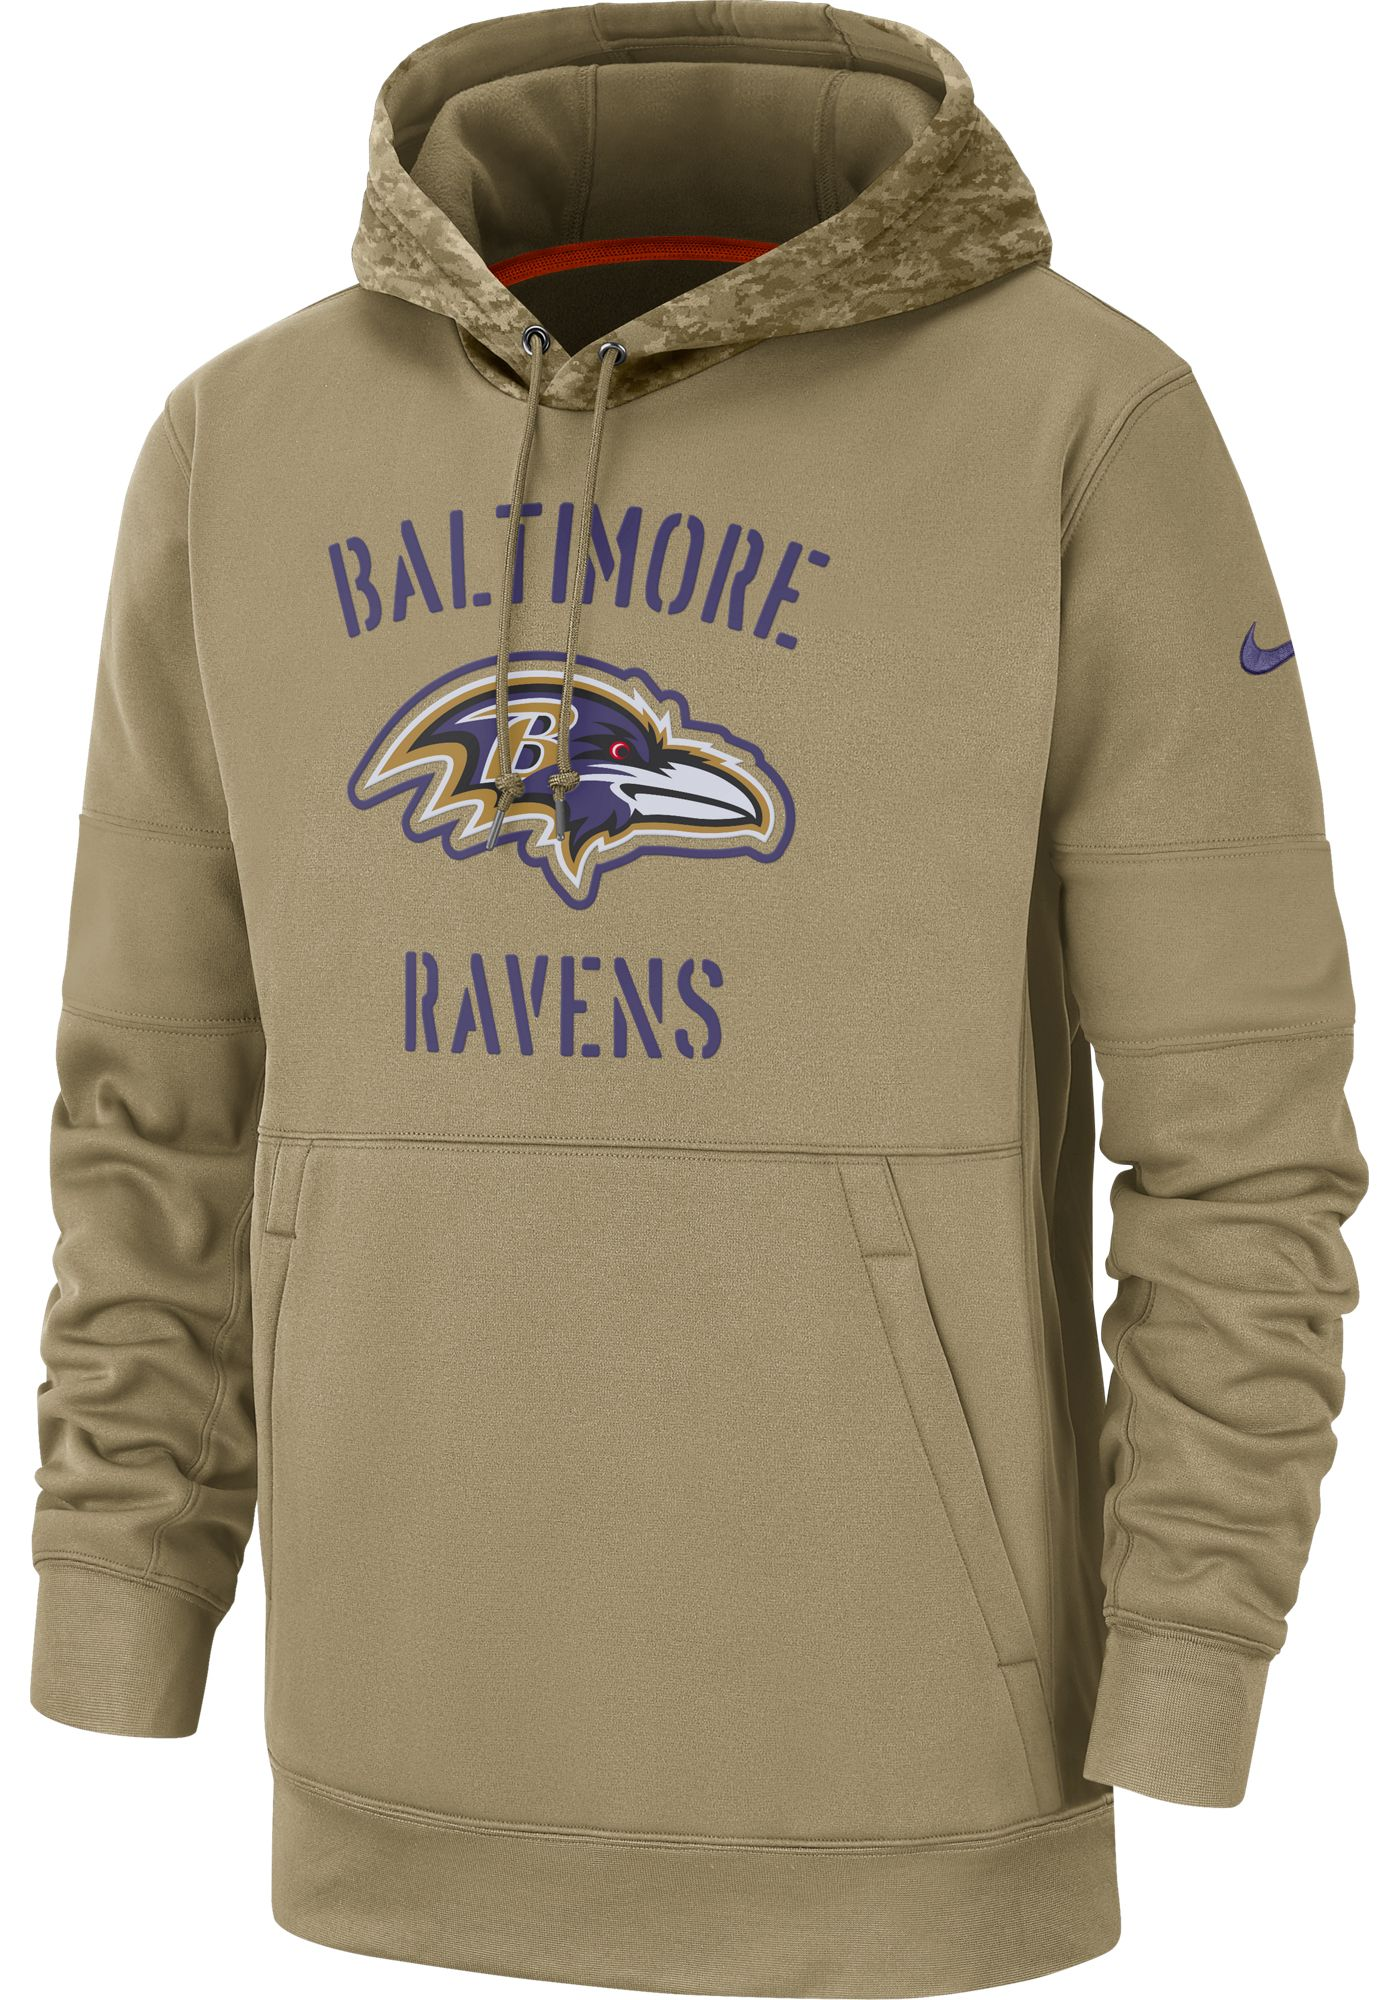 Nike Men's Salute to Service Baltimore Ravens Therma-FIT Beige Camo Hoodie